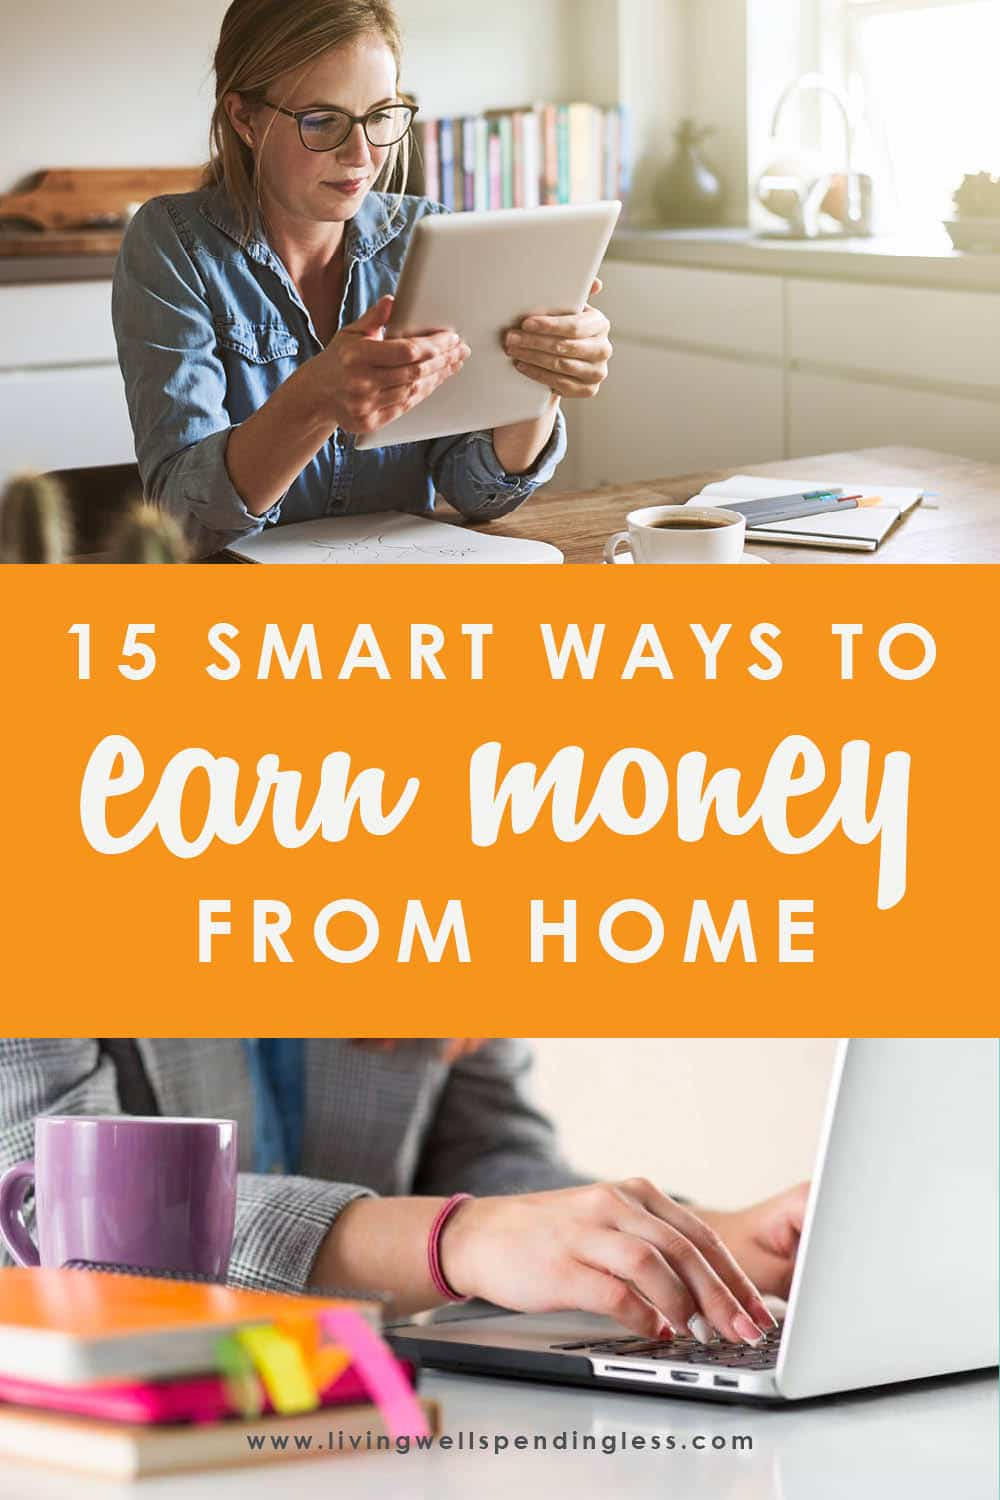 Whether you're looking to start a business or supplement your current income, this post offers the 15 best work from home jobs to make money starting now! #workfromhome #makemoneyonline #workfromhomejobs #bestworkfromhomejobs #makemoneyonline